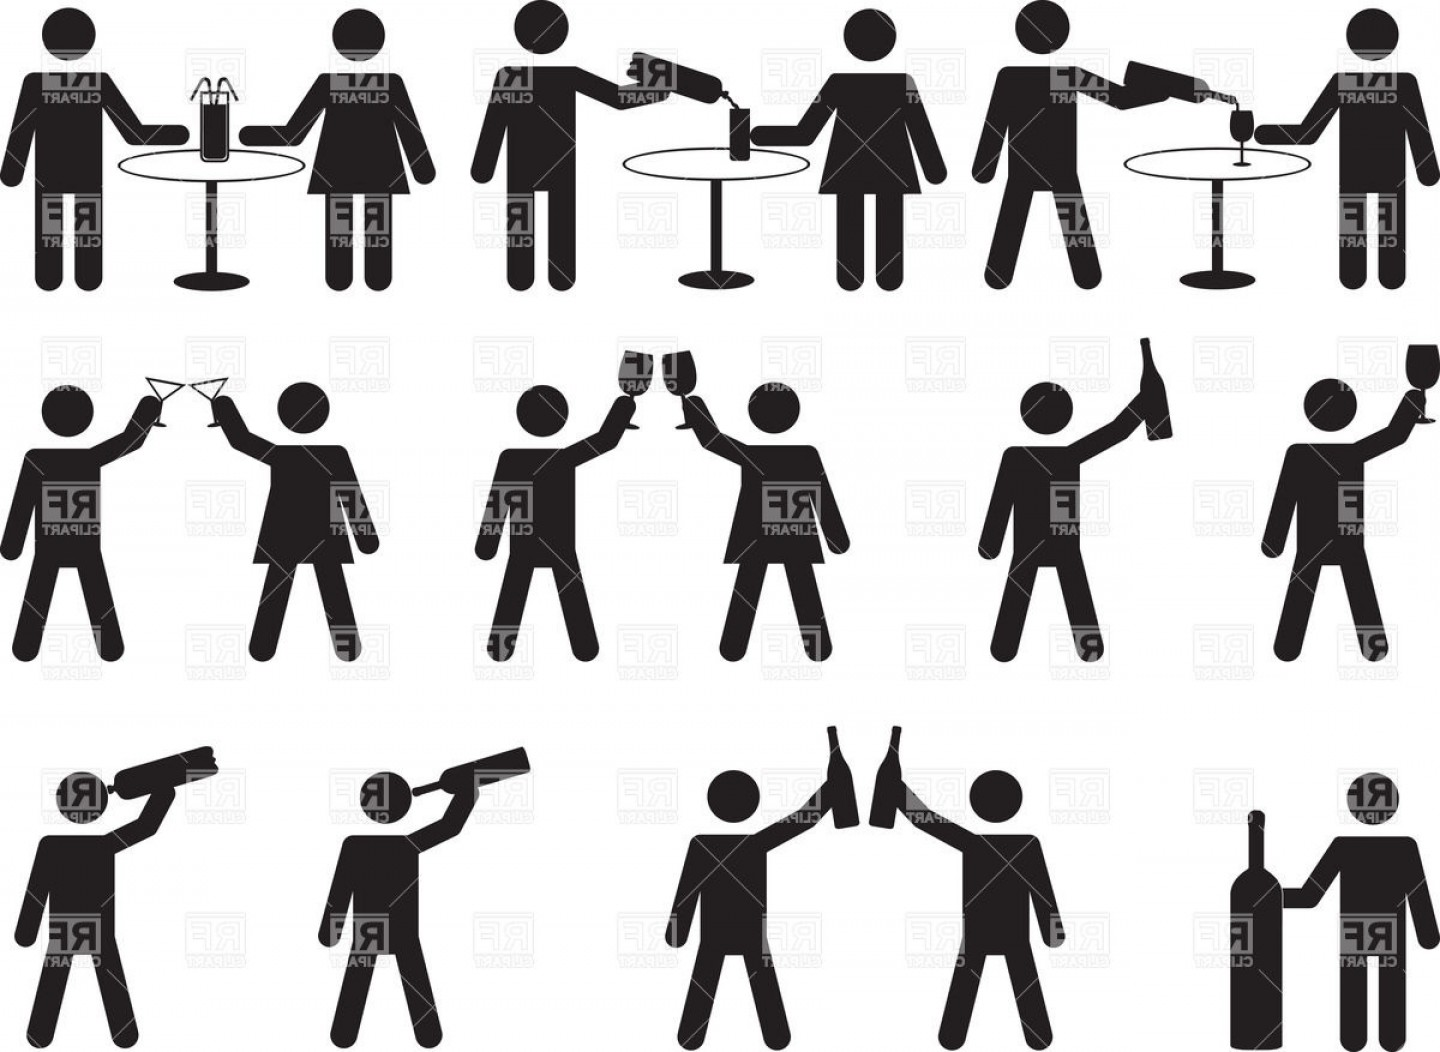 Alcohol Vector: Silhouettes Of People Drinking Alcohol Vector Clipart